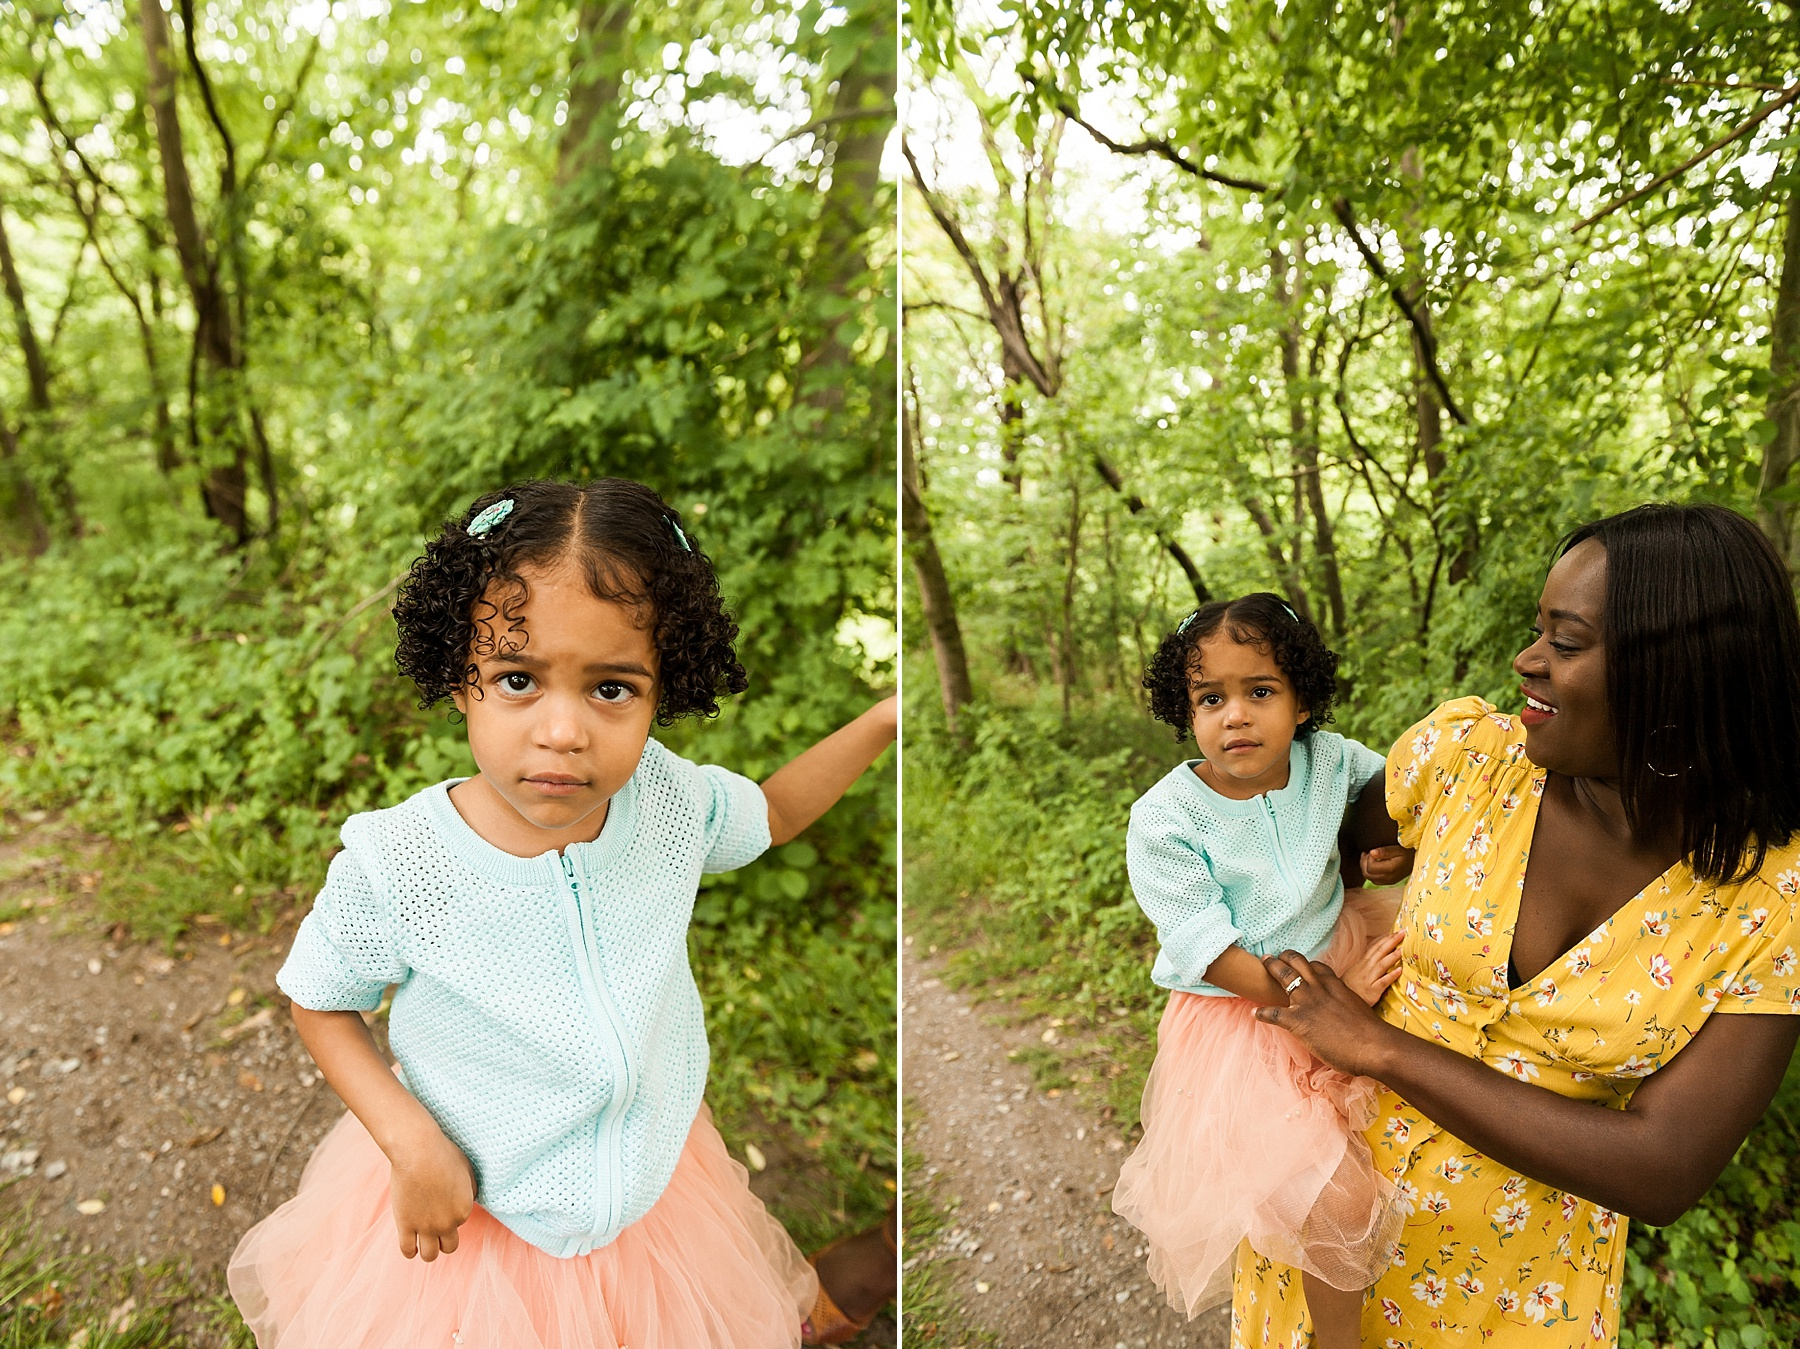 Wendy Zook Photography | Frederick MD family session, Frederick MD family photographer, Maryland family photographer, Frederick Maryland family photographer, family session, family portraits in Maryland, MD family photos